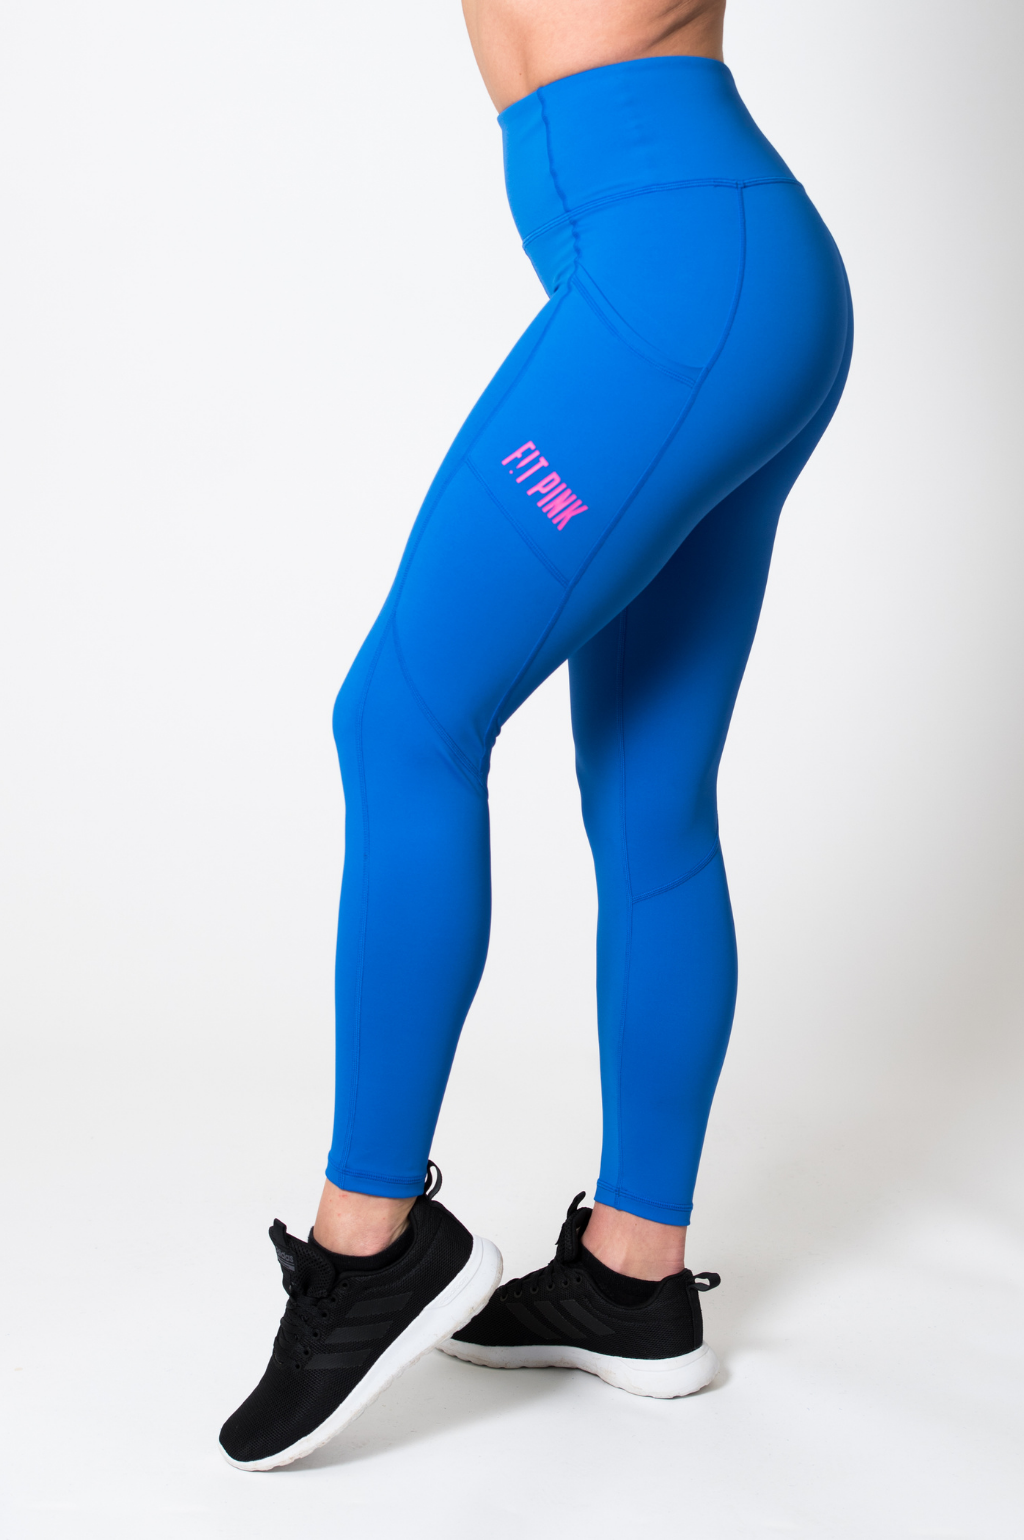 FitPink Elevate Leggings with Pockets in Bright Blue